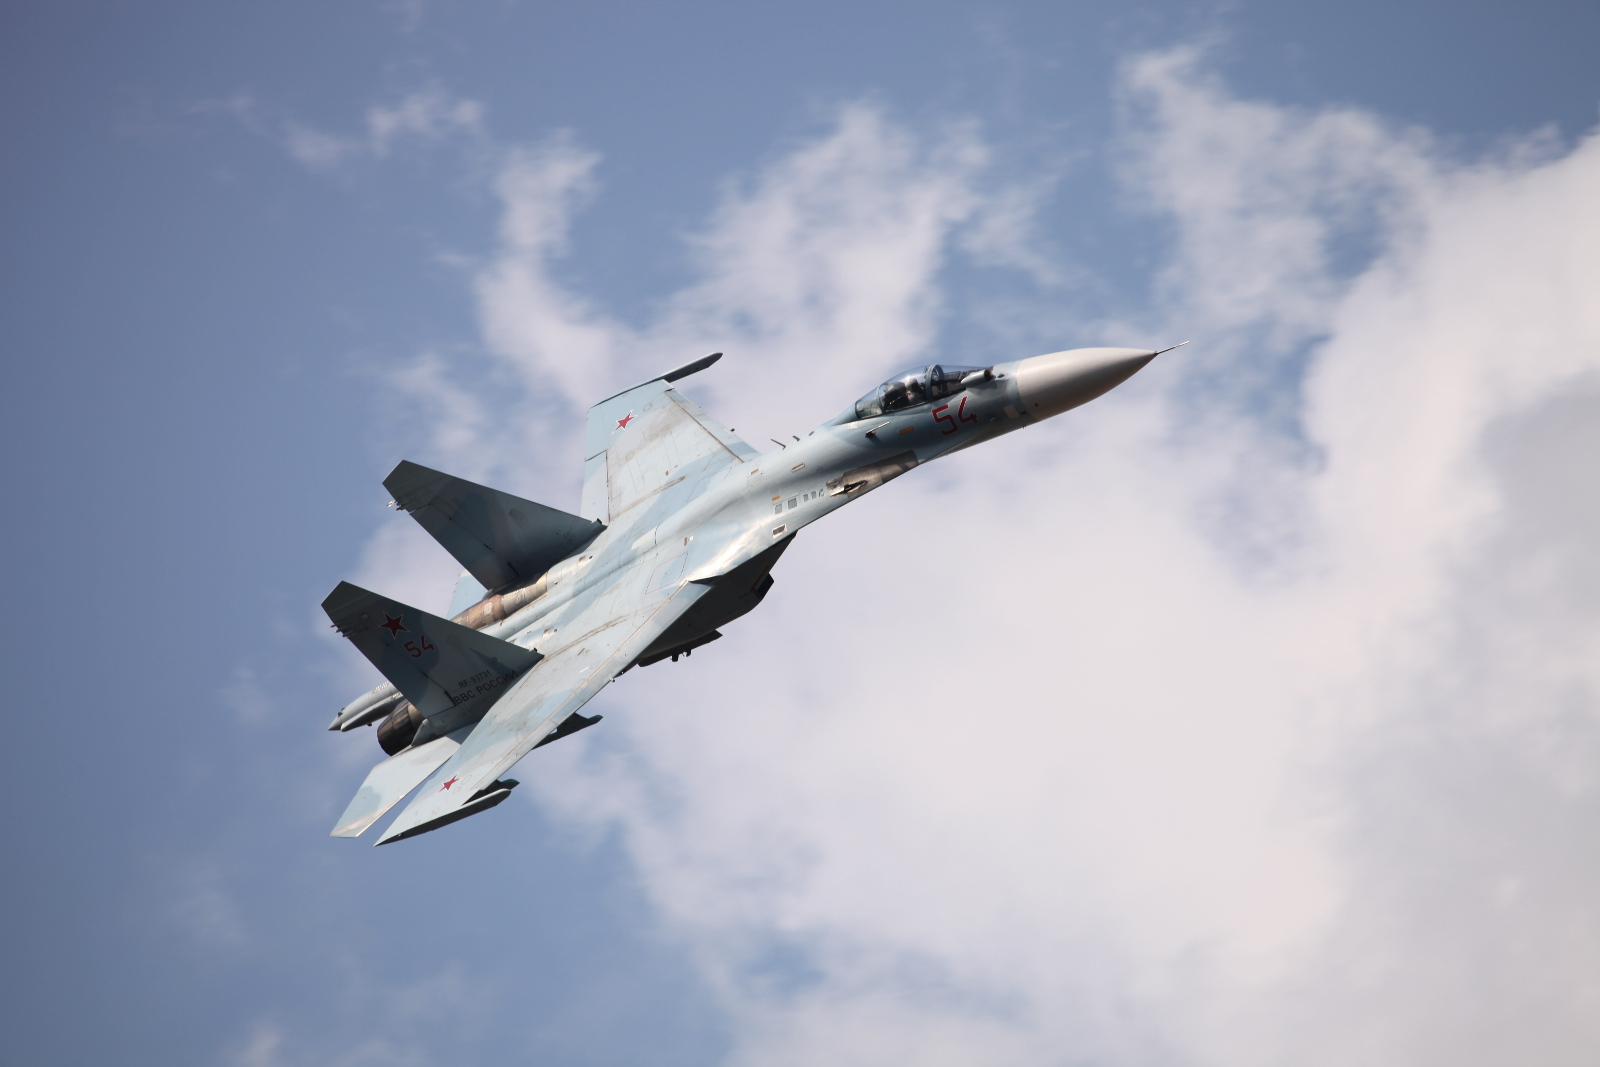 Russia Air Force SU-27